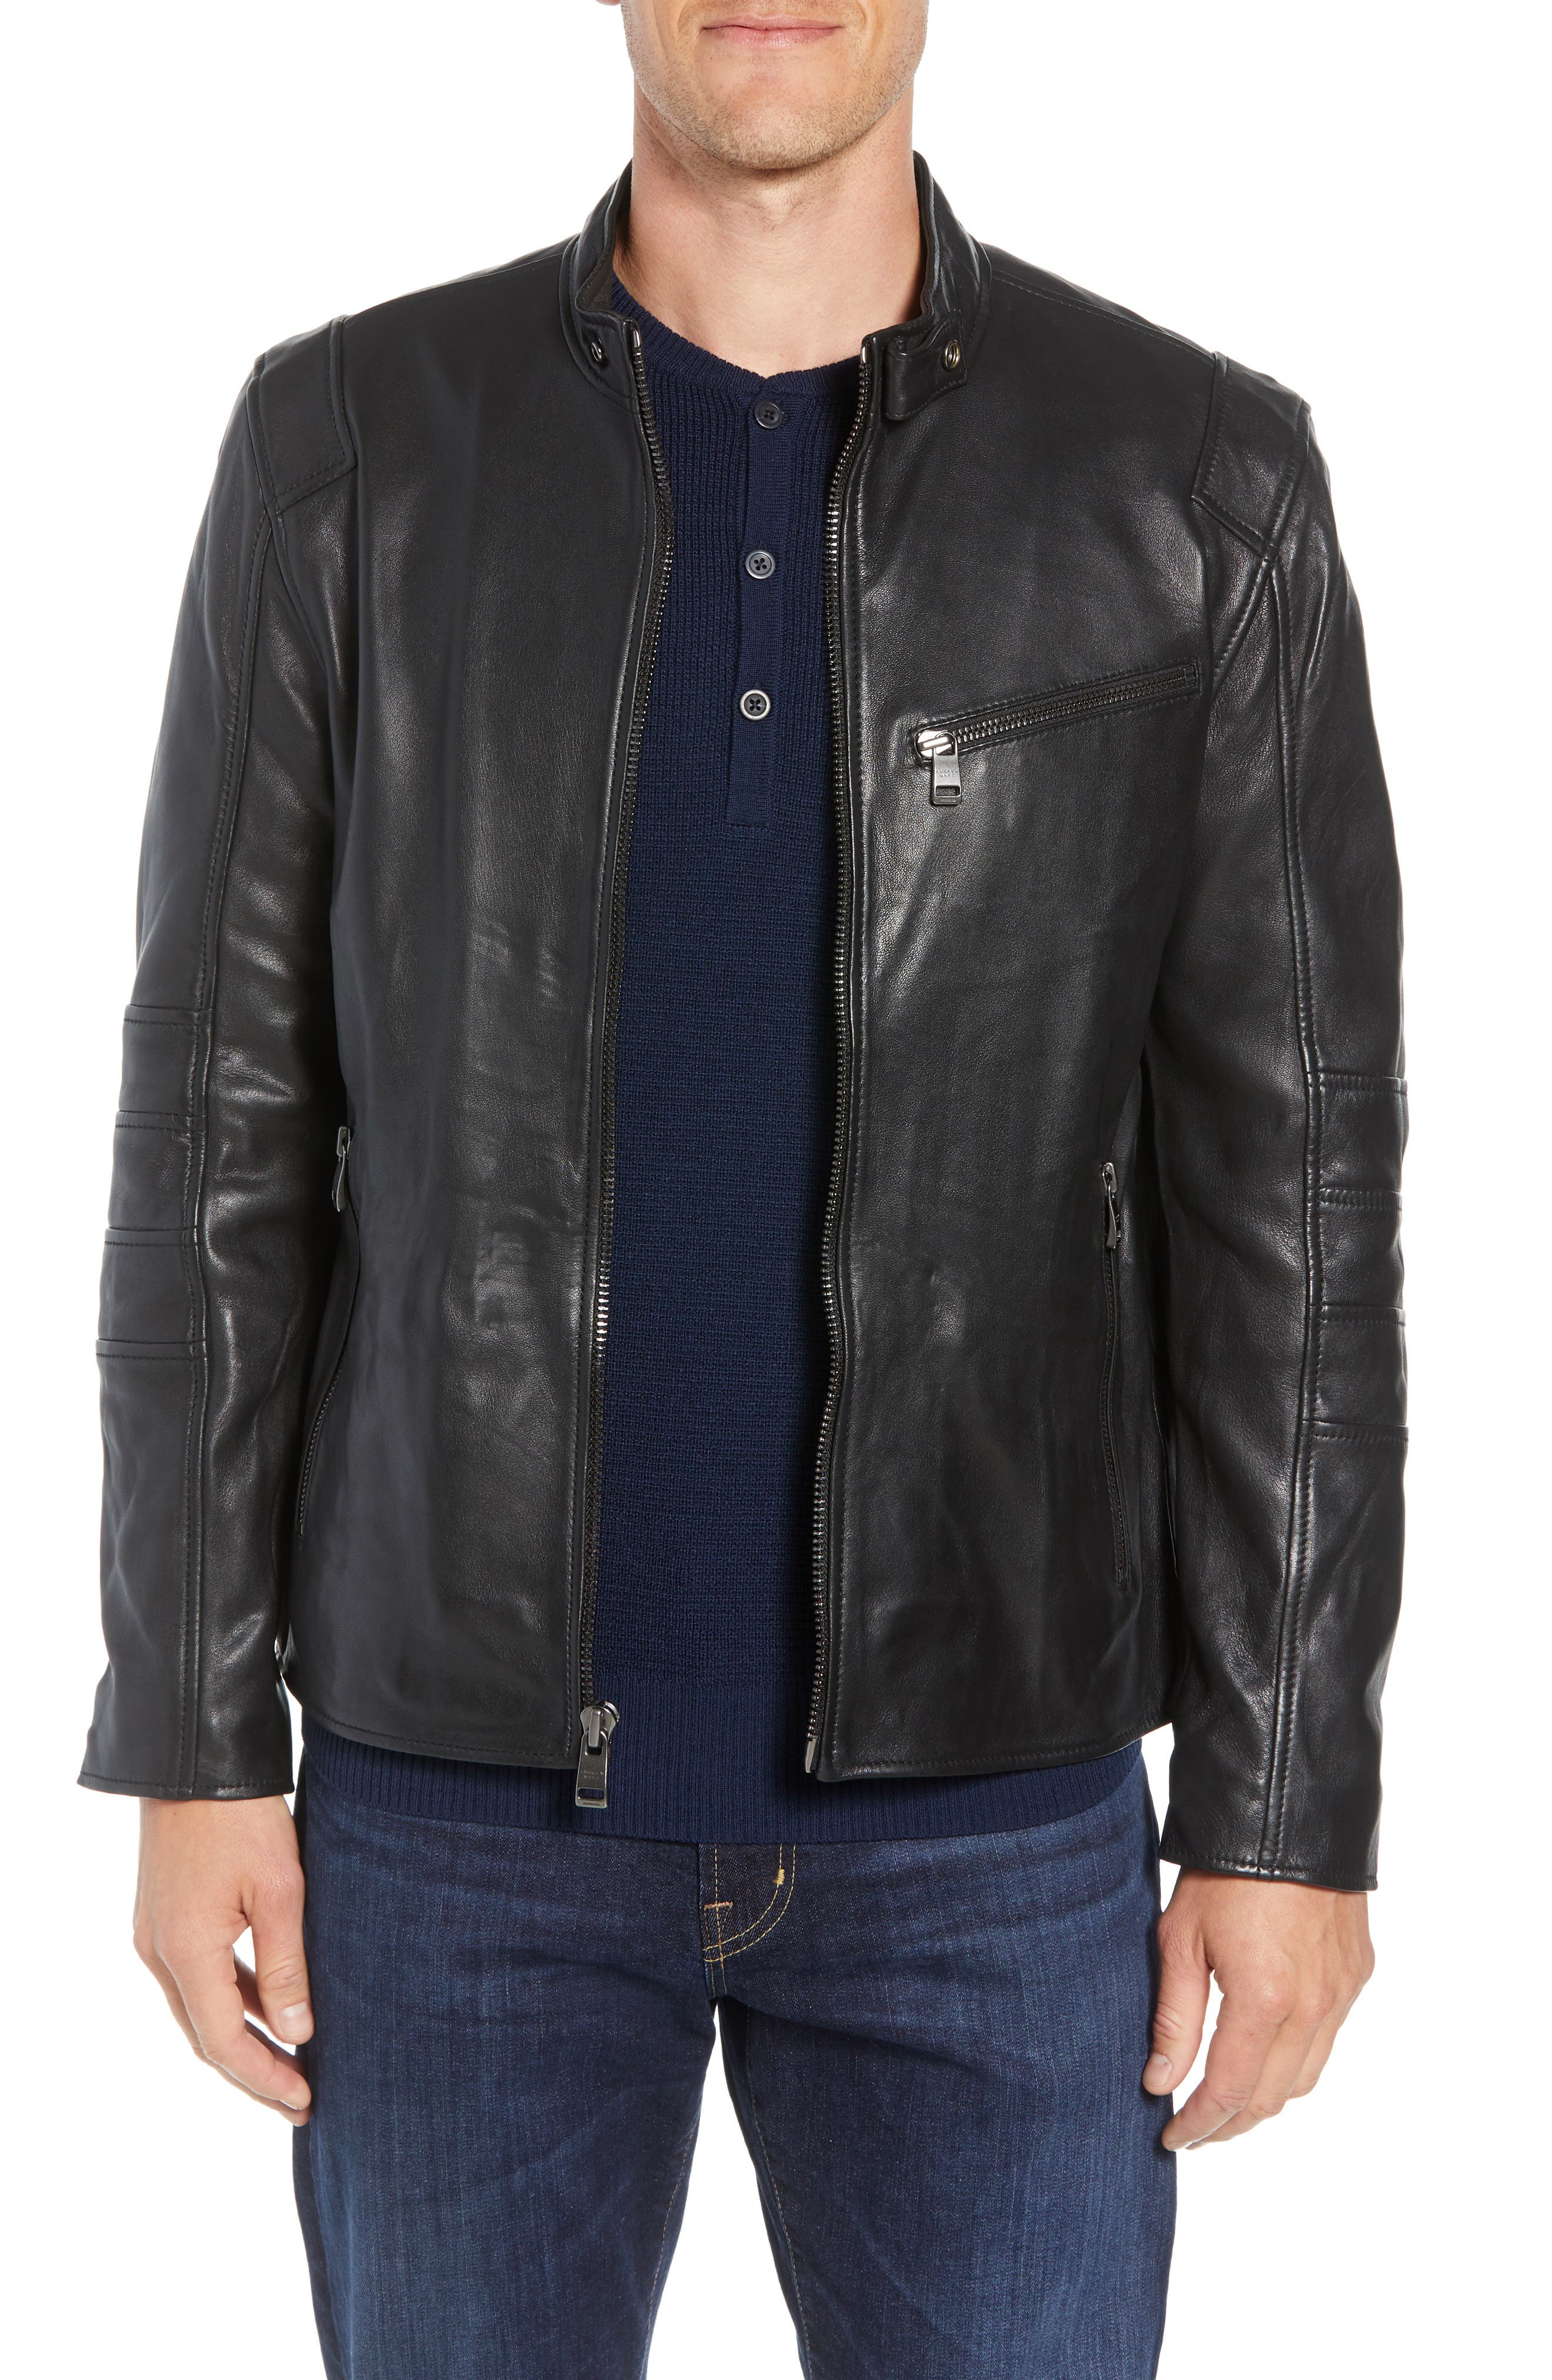 ANDREW MARC Quilted Leather Moto Jacket, Main, color, BLACK